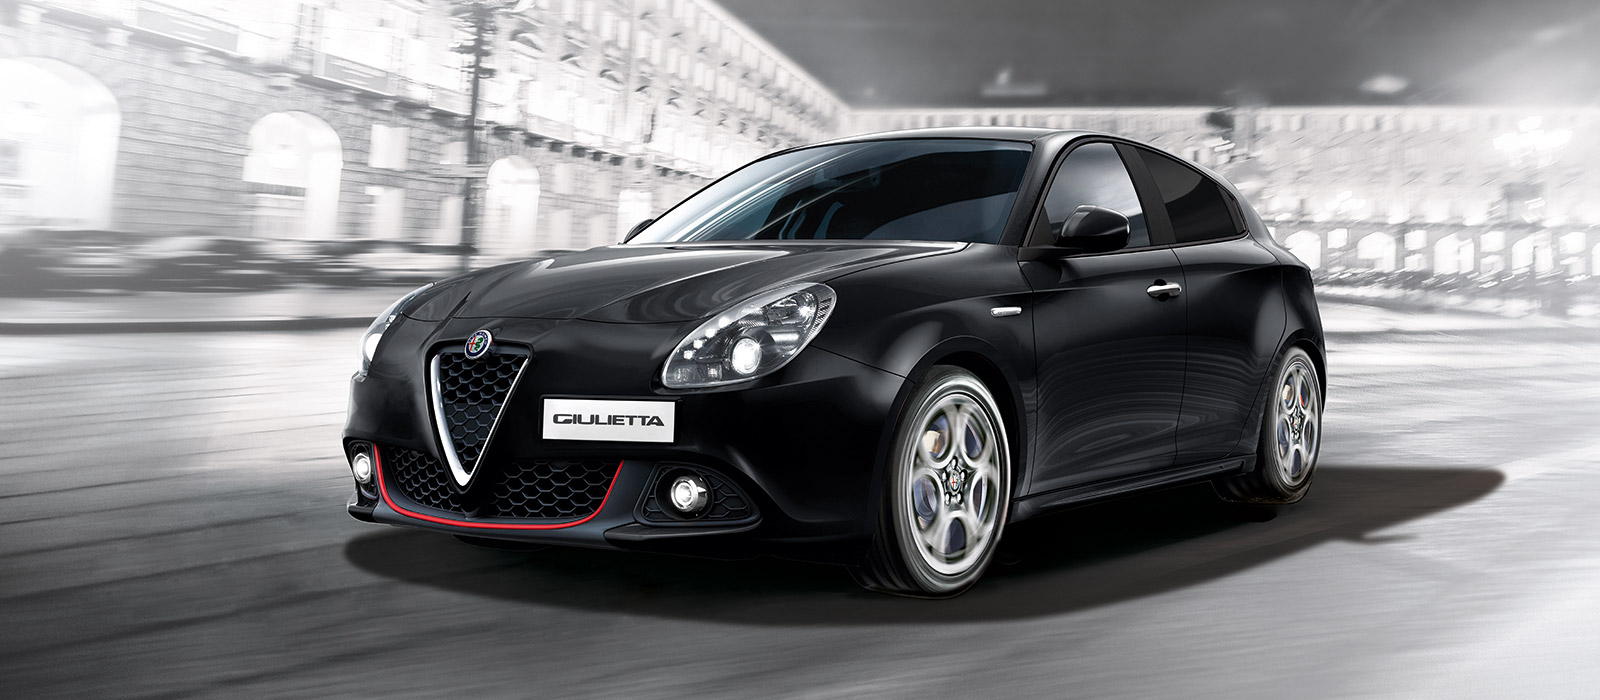 giulietta promotion voiture neuve alfa romeo. Black Bedroom Furniture Sets. Home Design Ideas